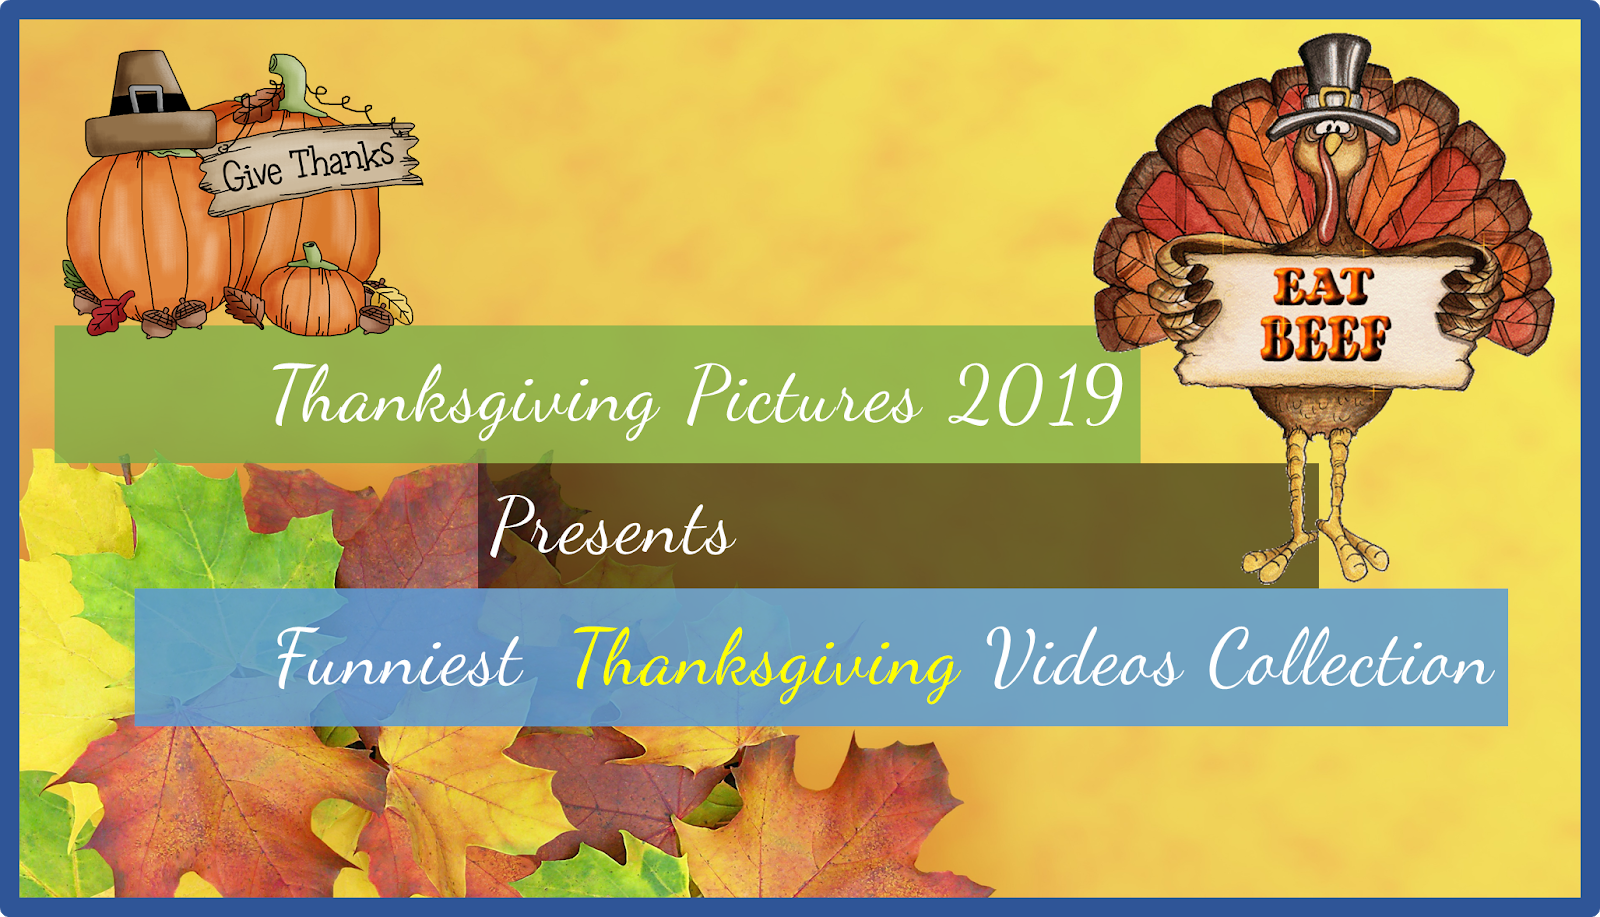 Thanksgiving pictures 2019